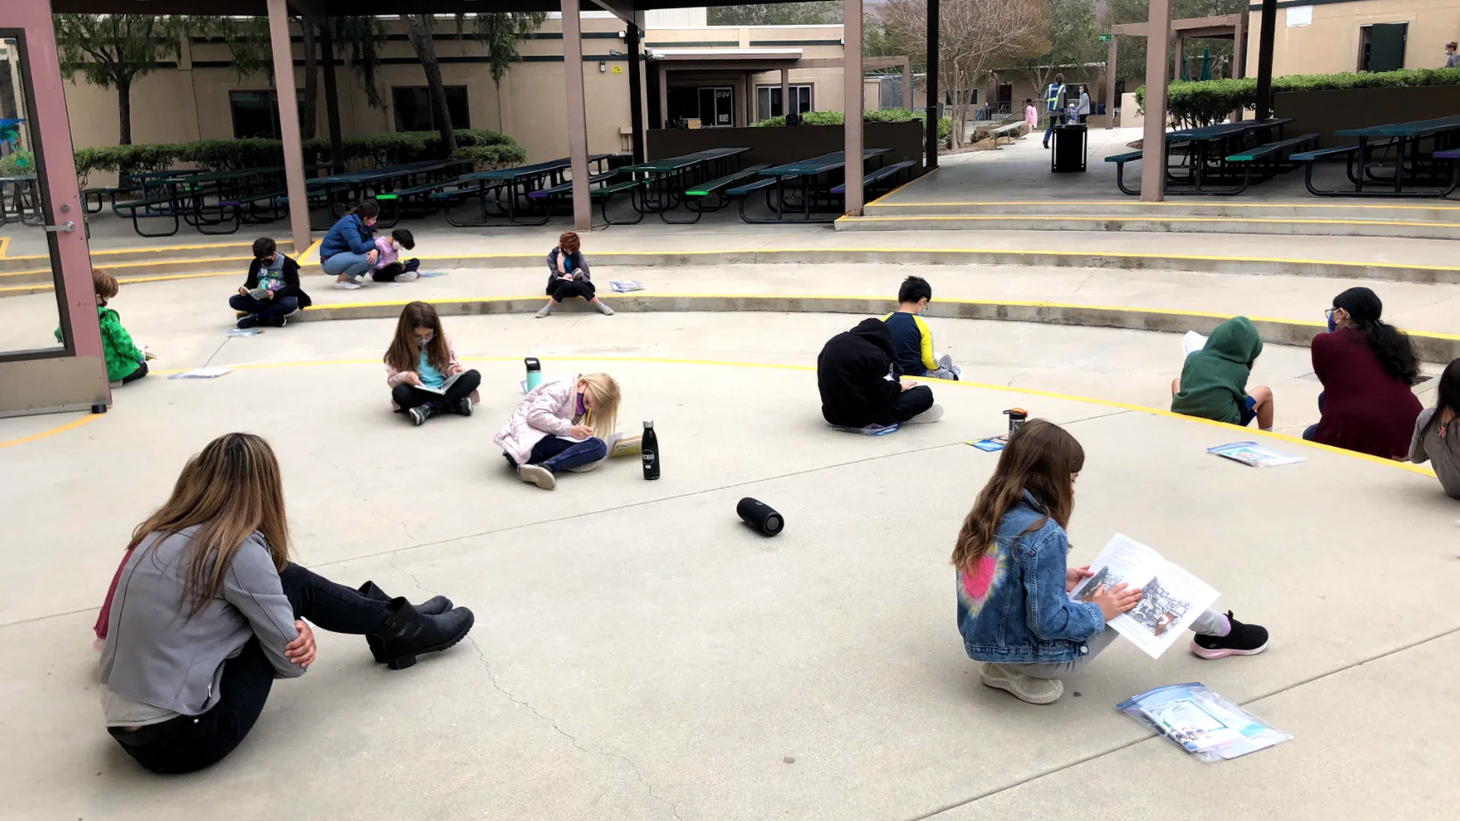 Students at Red Oak Elementary sit socially distanced and masked during outdoor reading time.